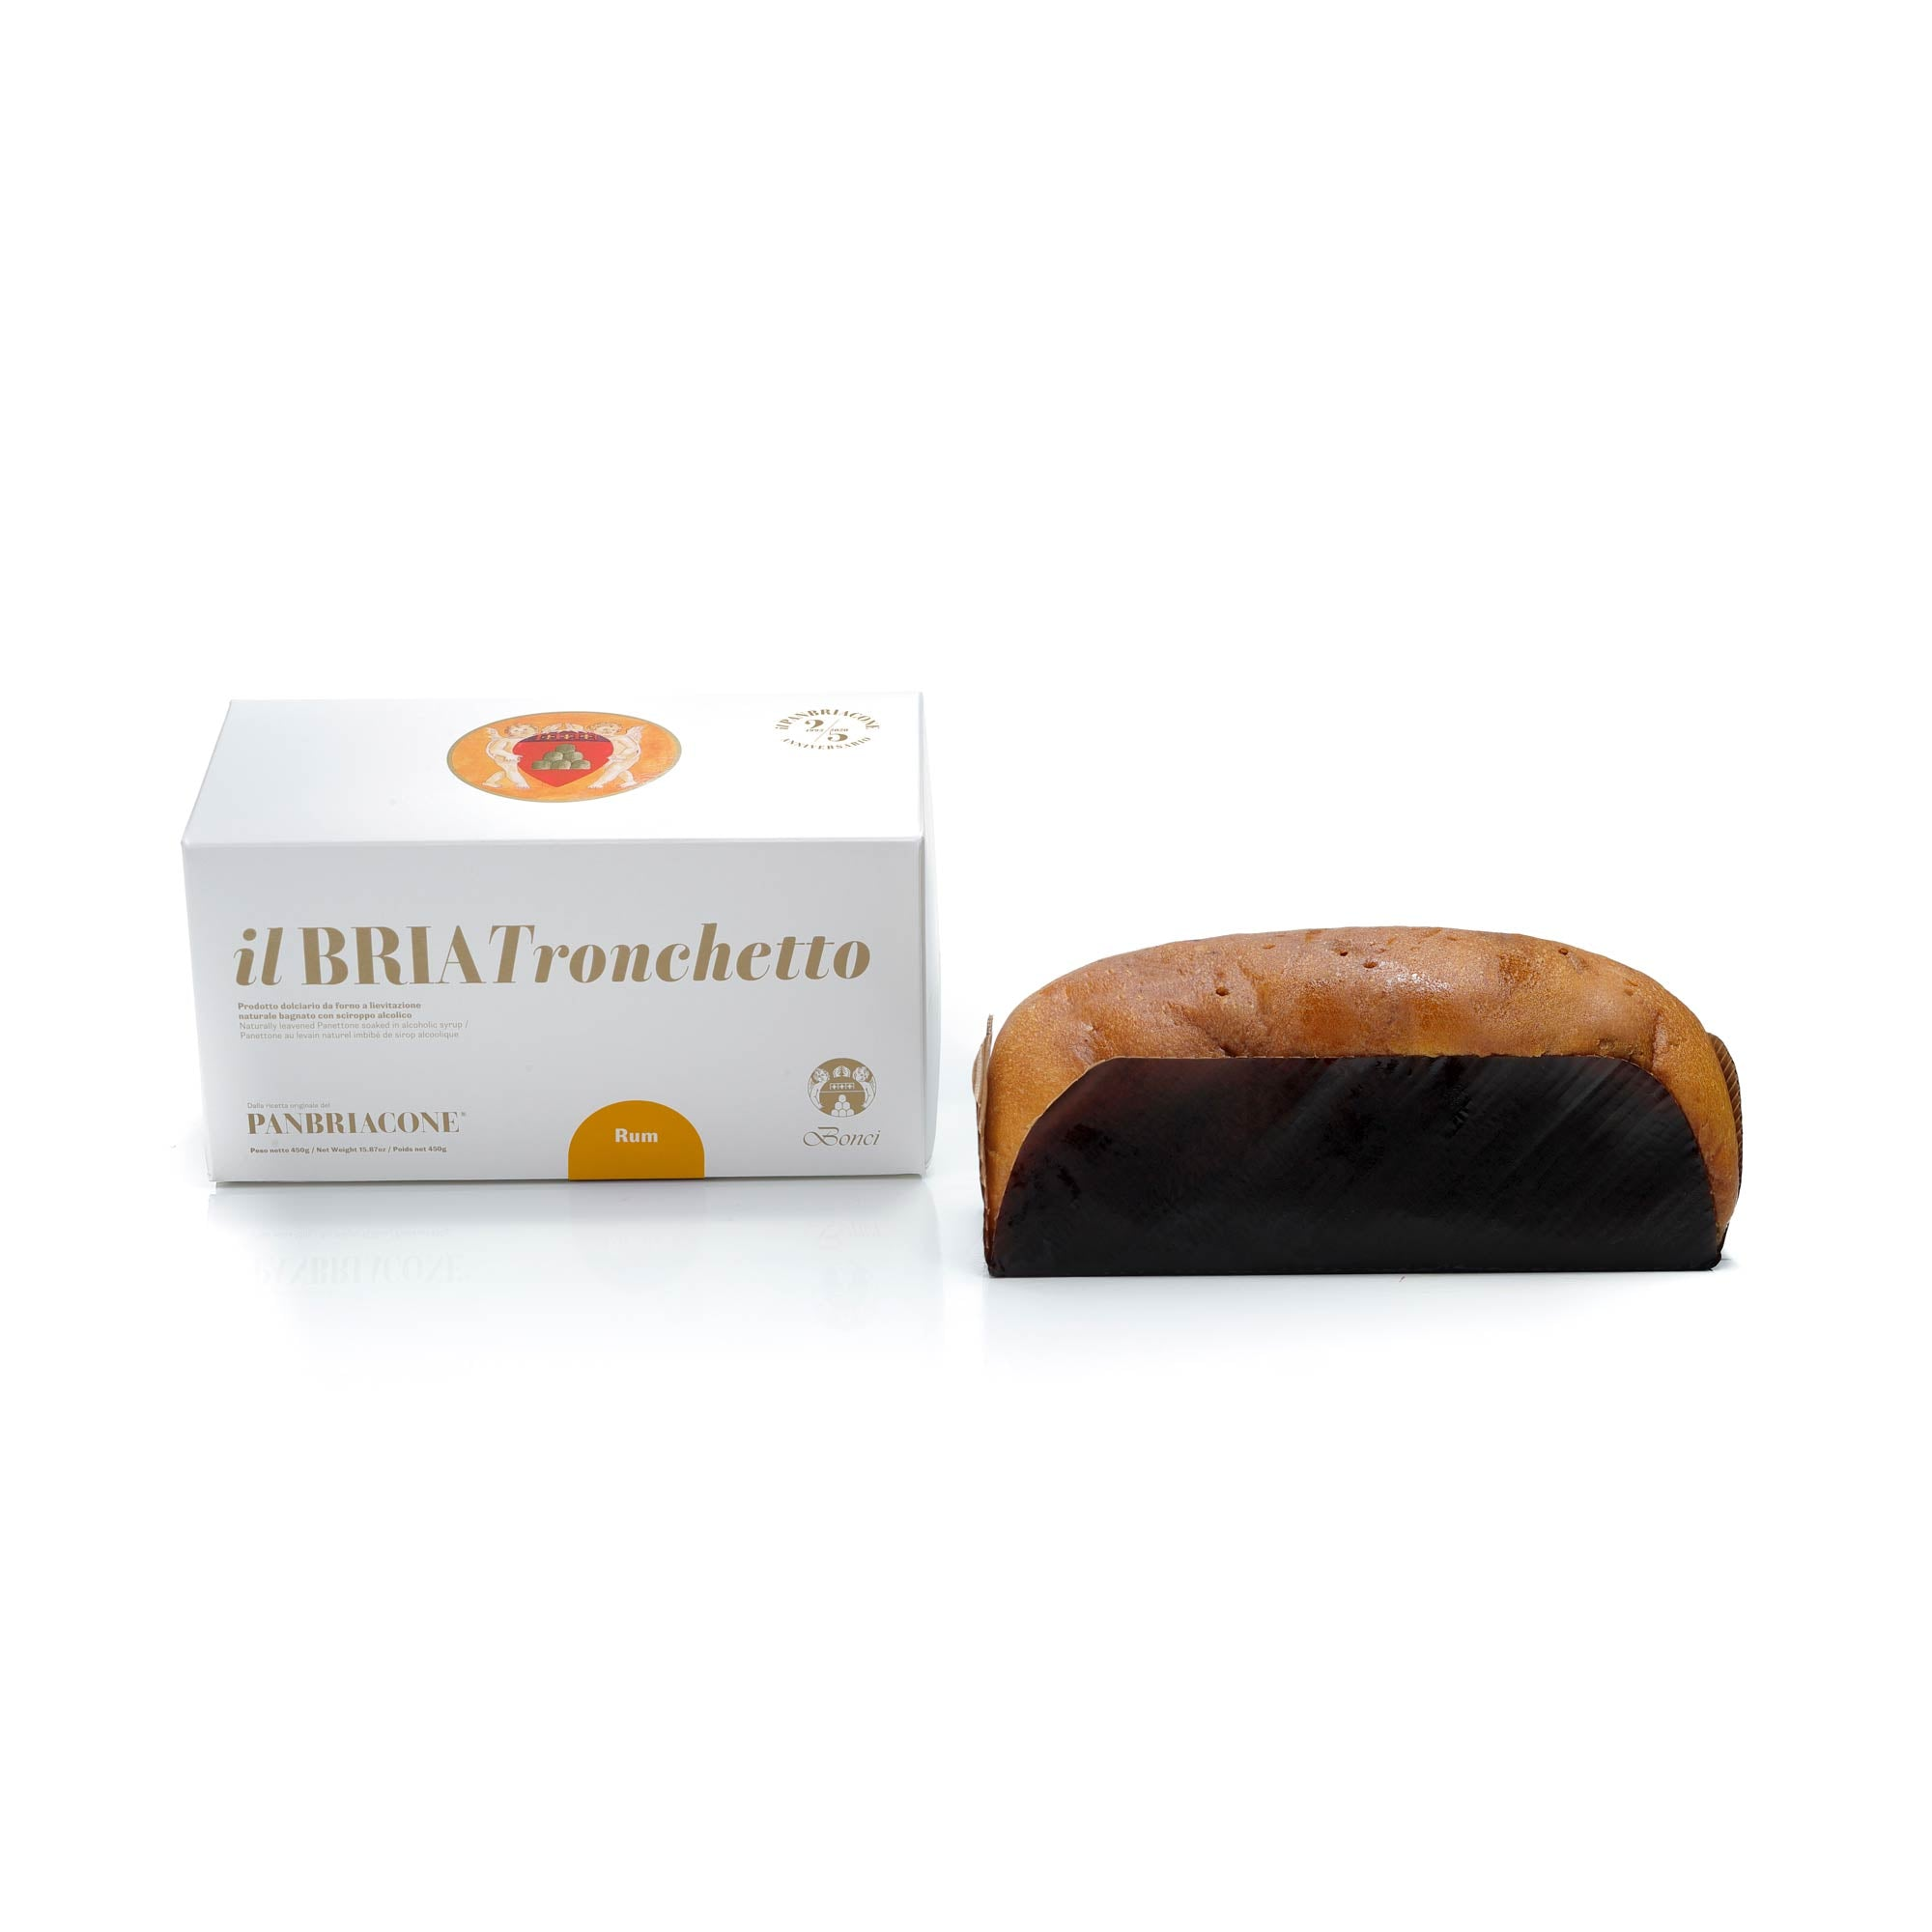 The BRIA Tronchetto - Dark Chocolate & Rum 450g